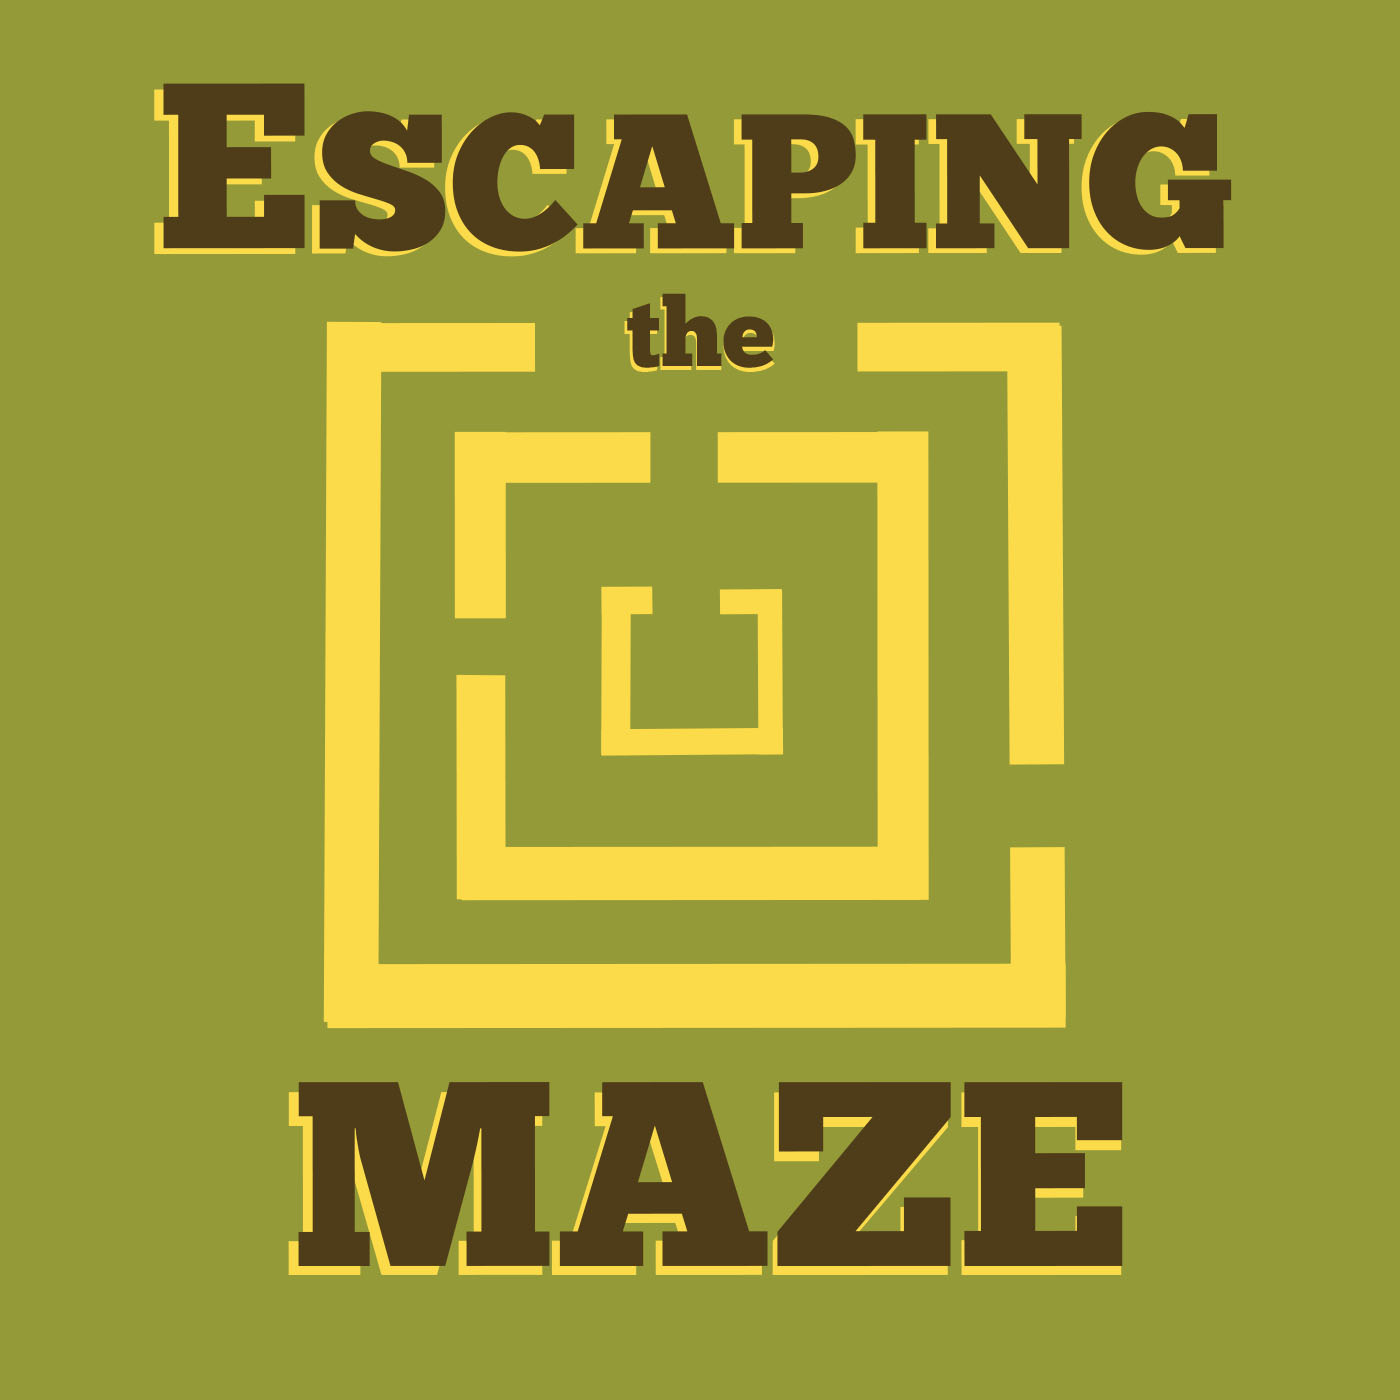 Escaping the Maze Podcast - A podcast devoted to prodigal sons and daughters through Biblical Scripture and commentary on news, politics, even entertainment as signs